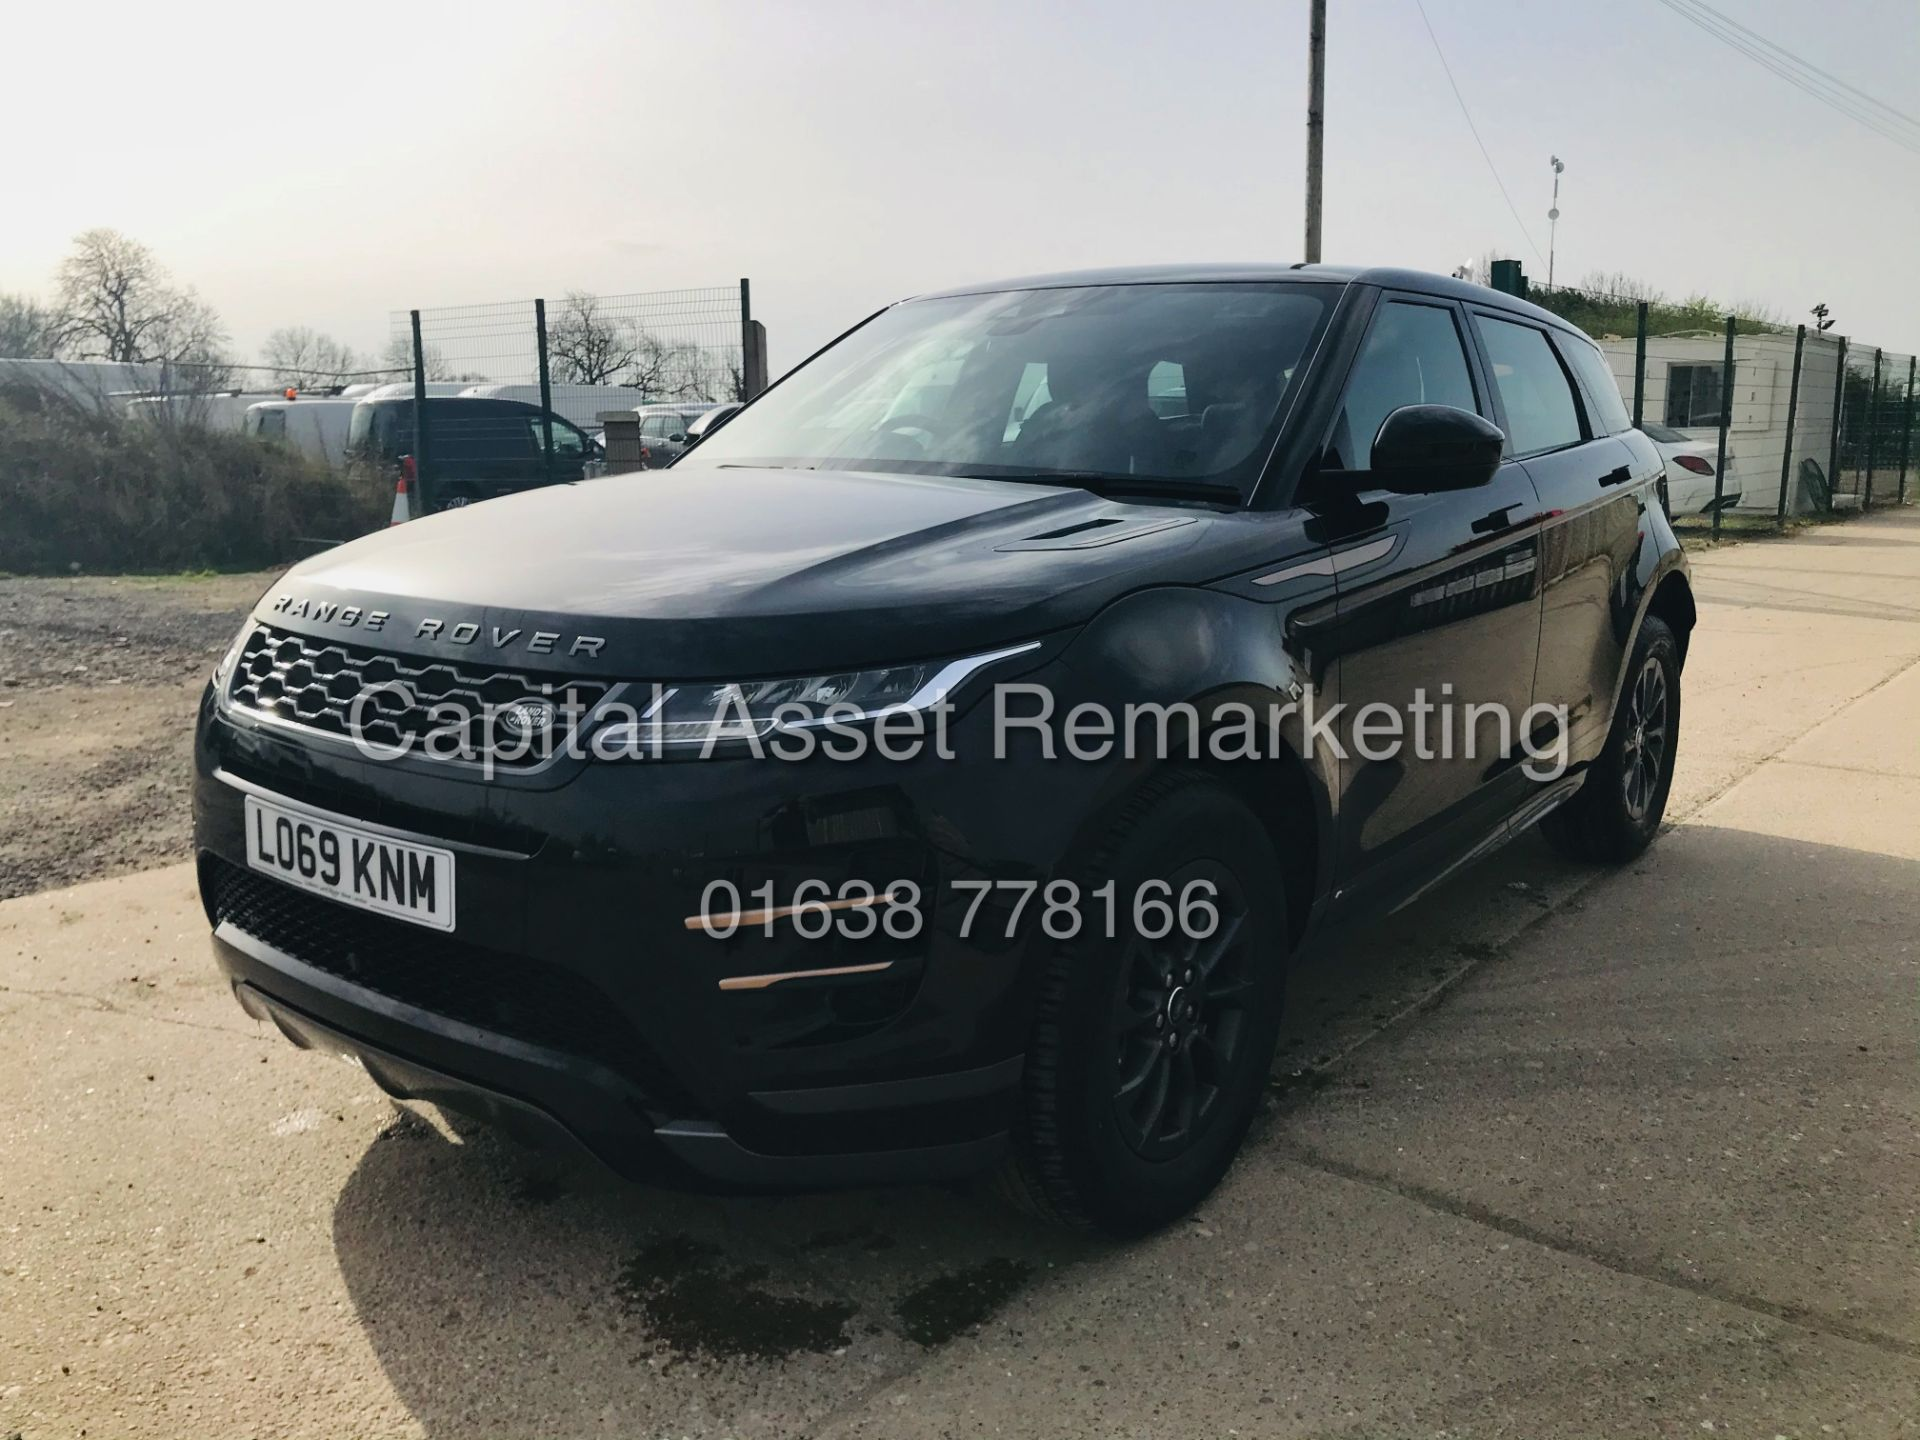 "(On Sale) RANGE ROVER EVOQUE R-DYNAMIC 2.0 D150 ""BLACK EDITION"" (2020) GREAT SPEC - ONLY 4500 MILES - Image 5 of 26"